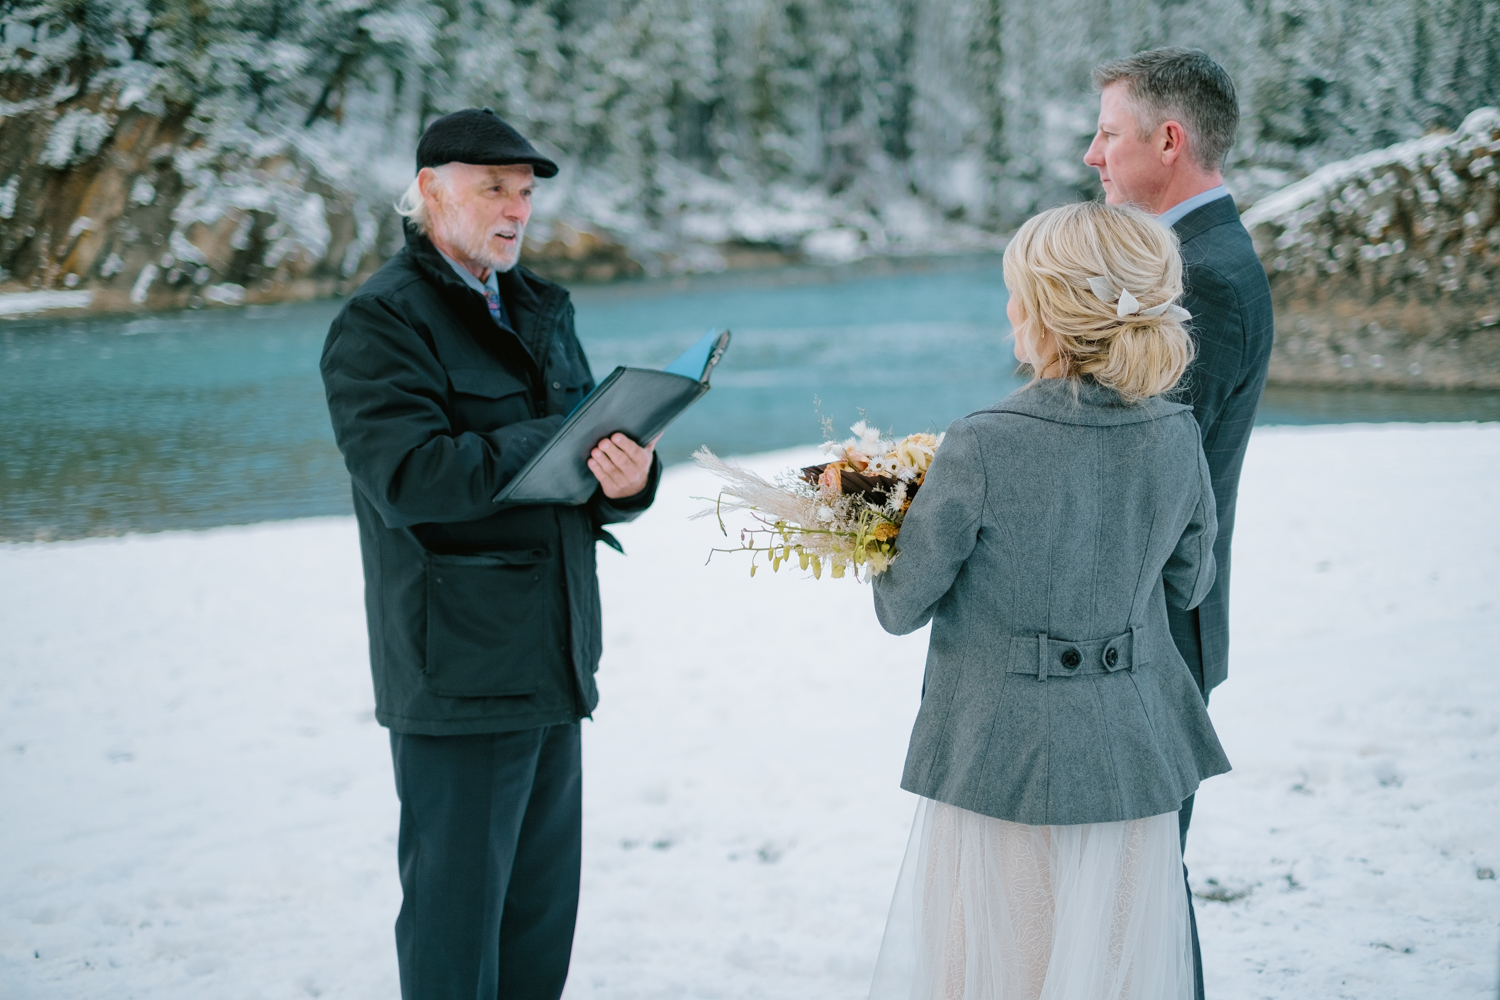 Banff wedding ceremony locations